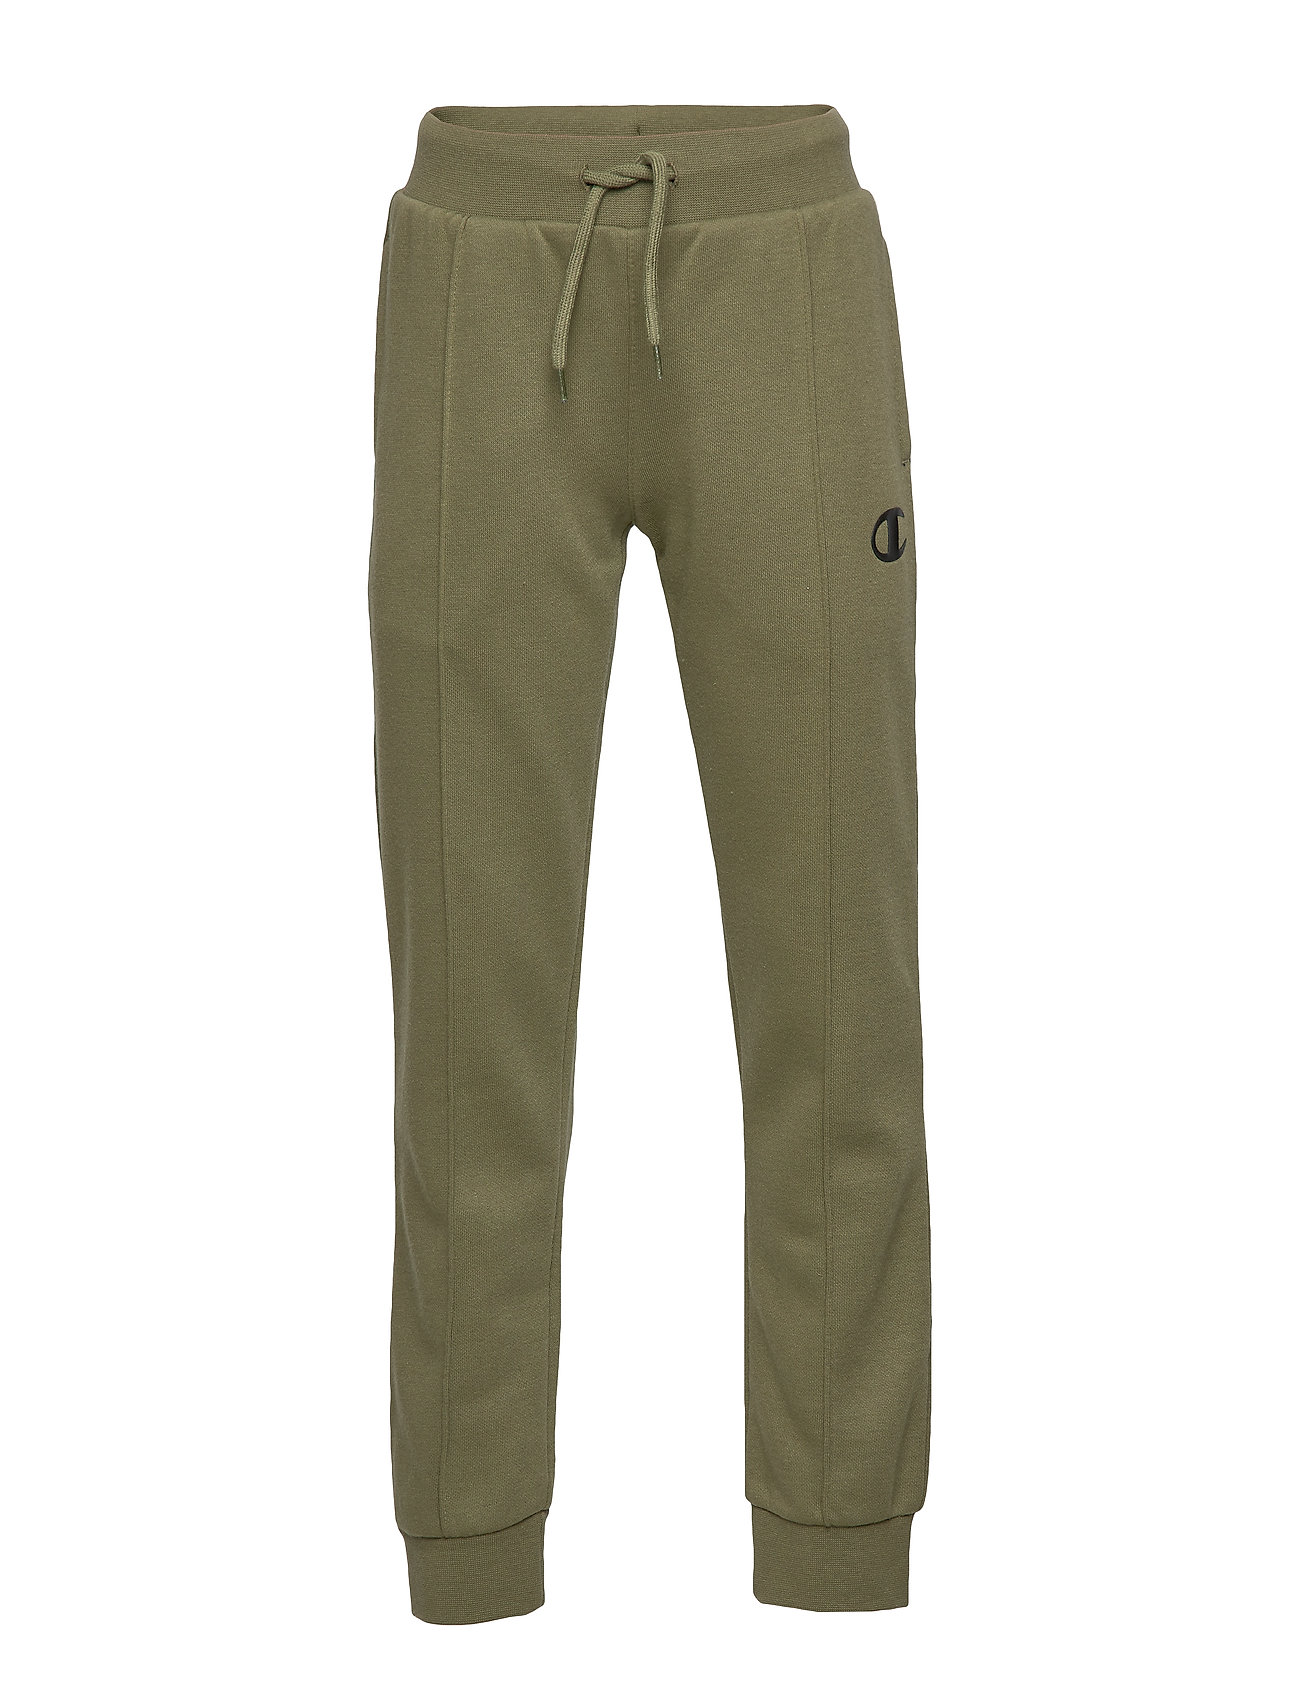 Champion Rib Cuff Pants - WINTER MOSS